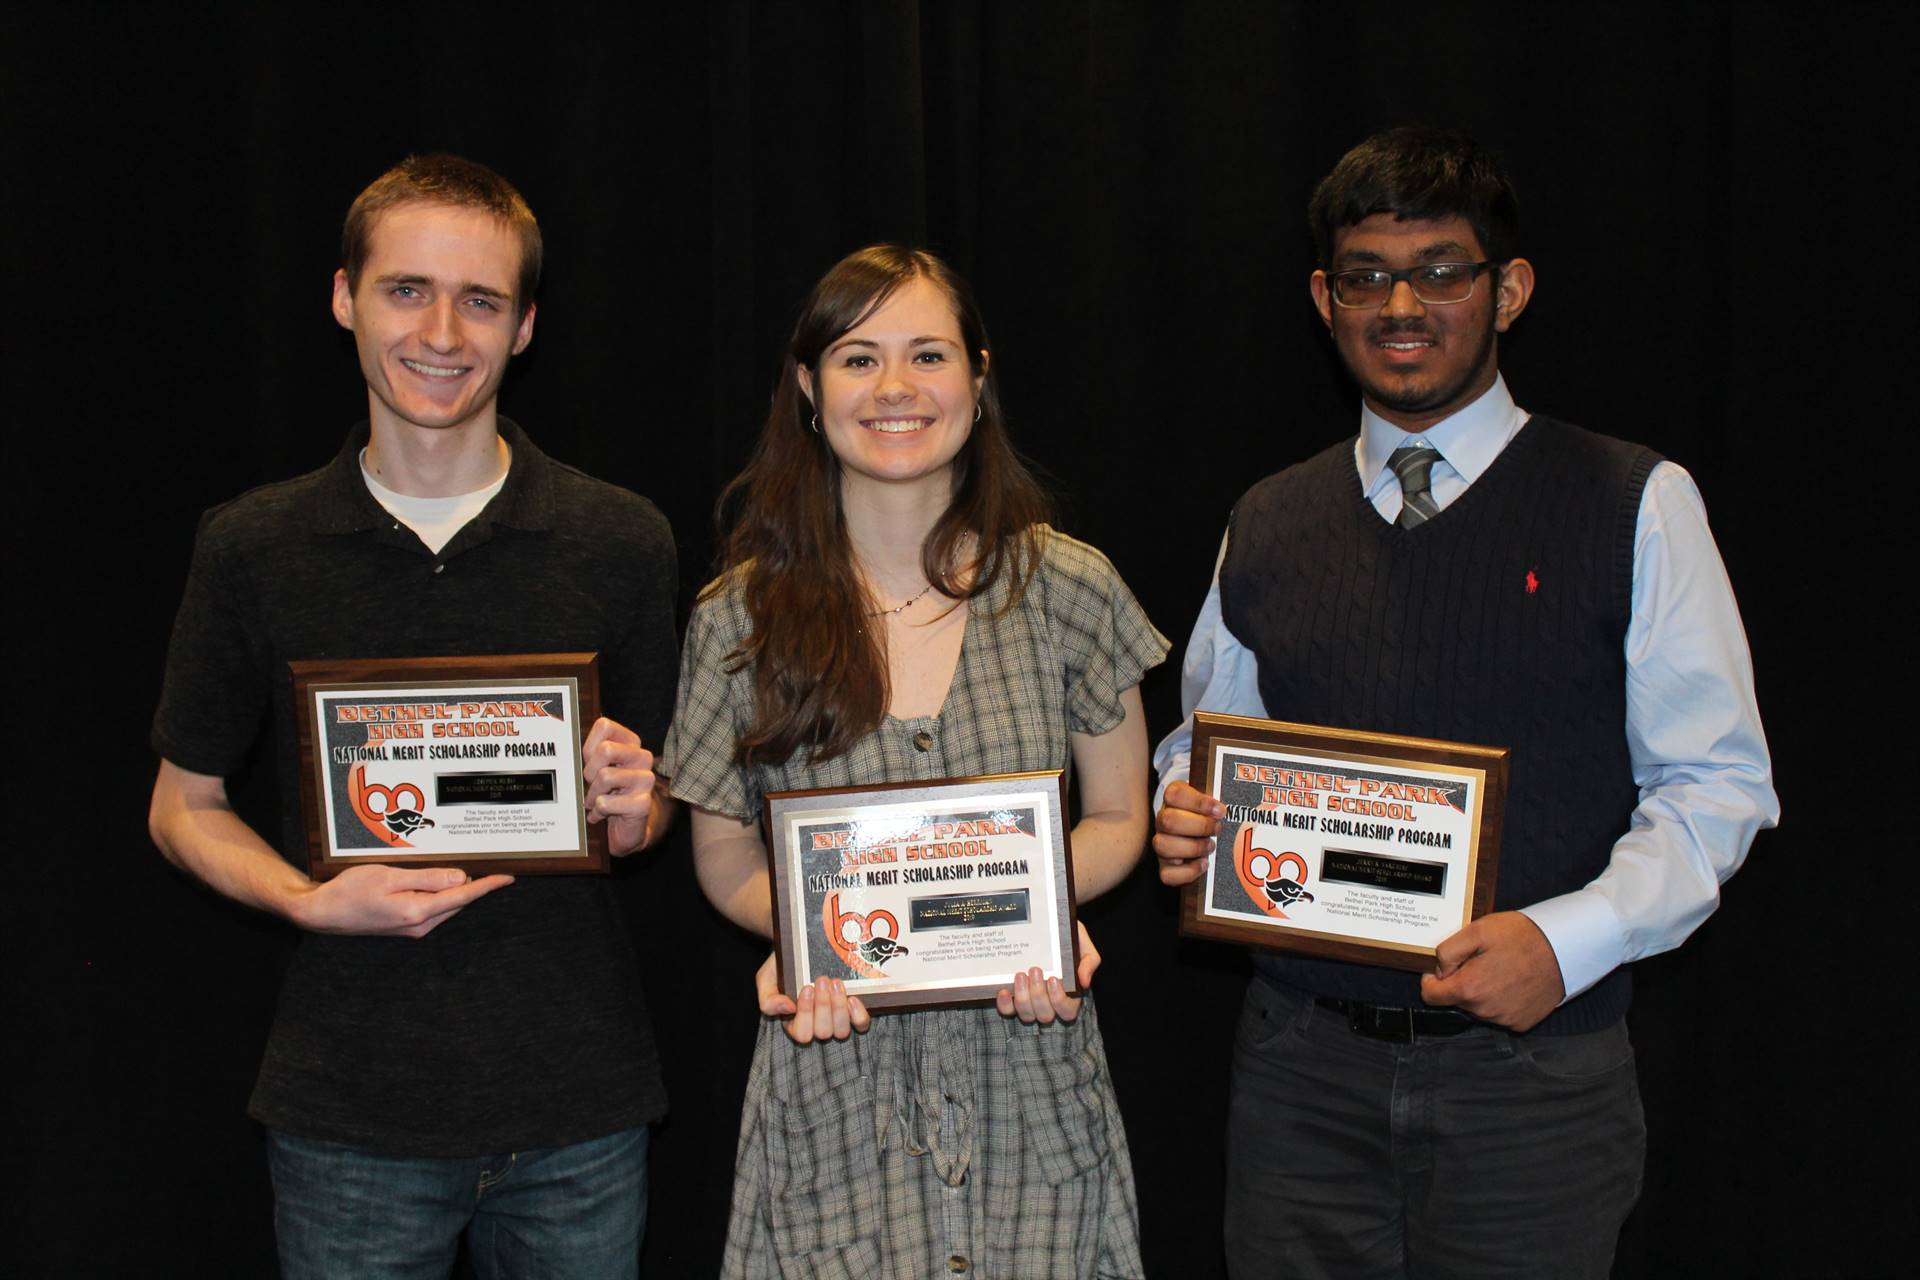 The three National Merit Commended Students